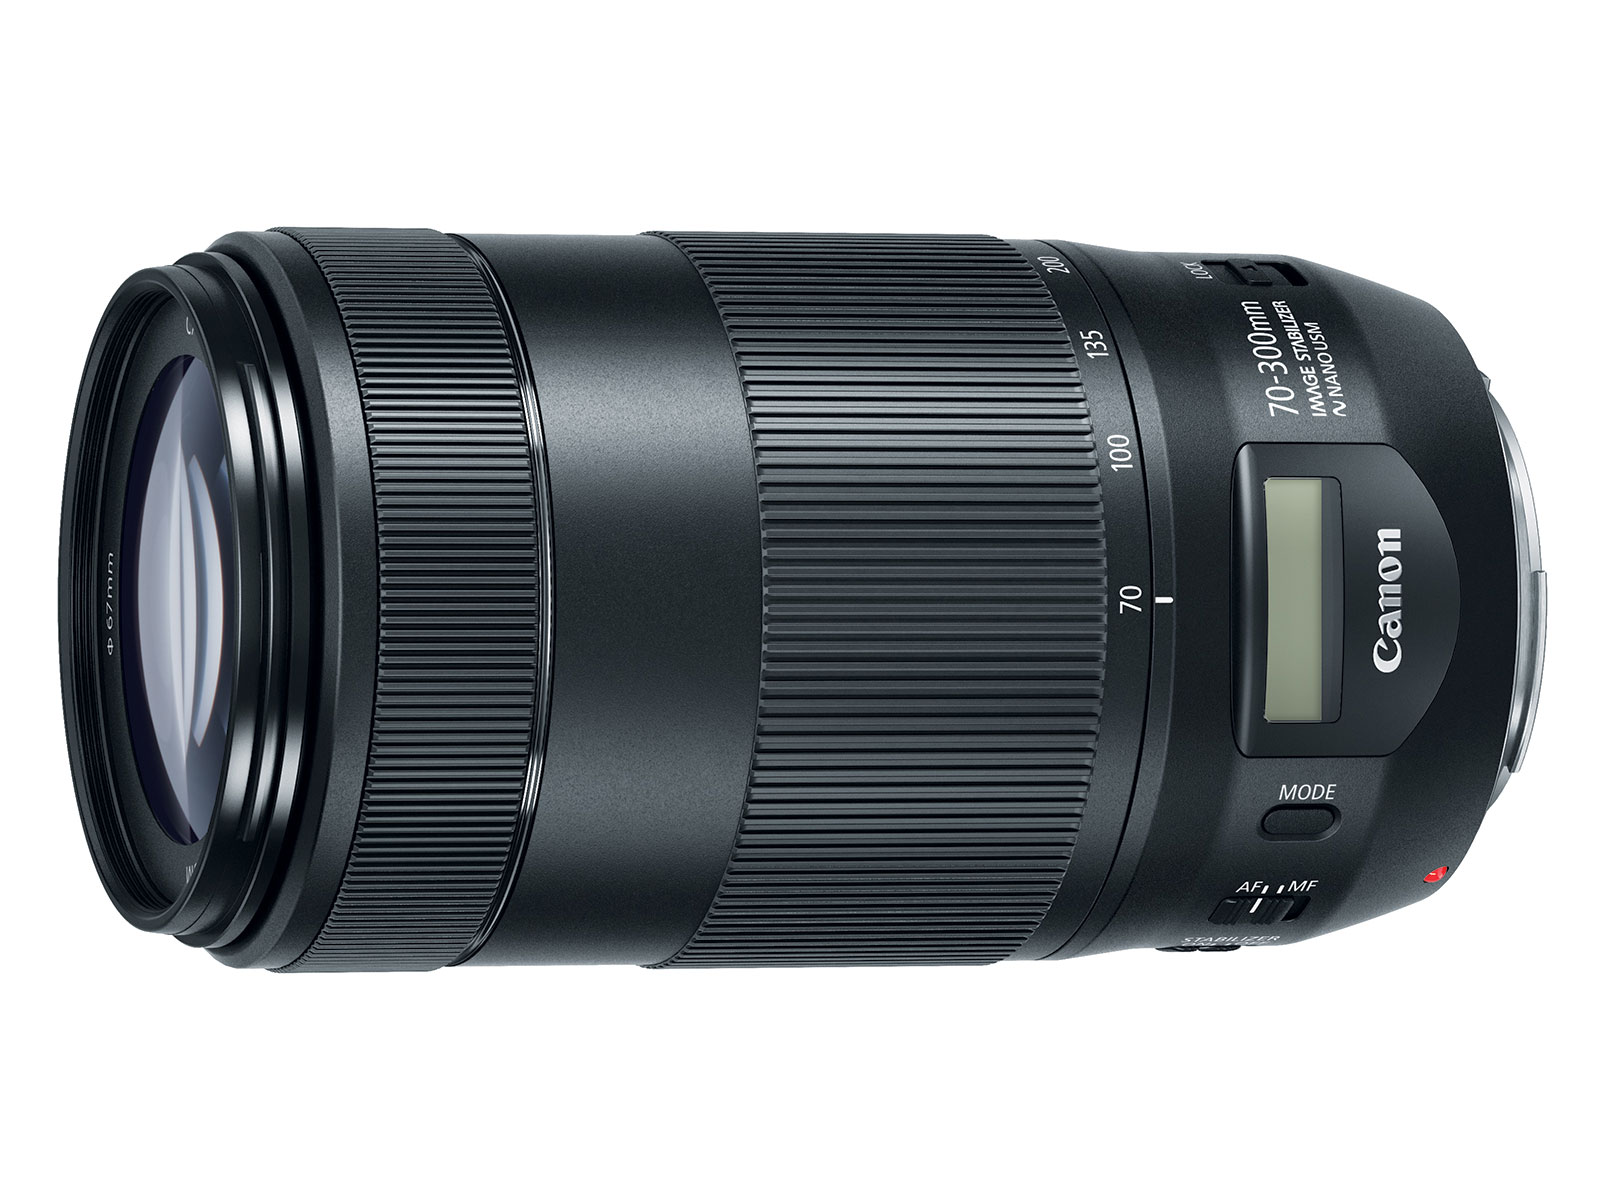 ef_70-300mm_4_5-5_6_ii_is.jpg